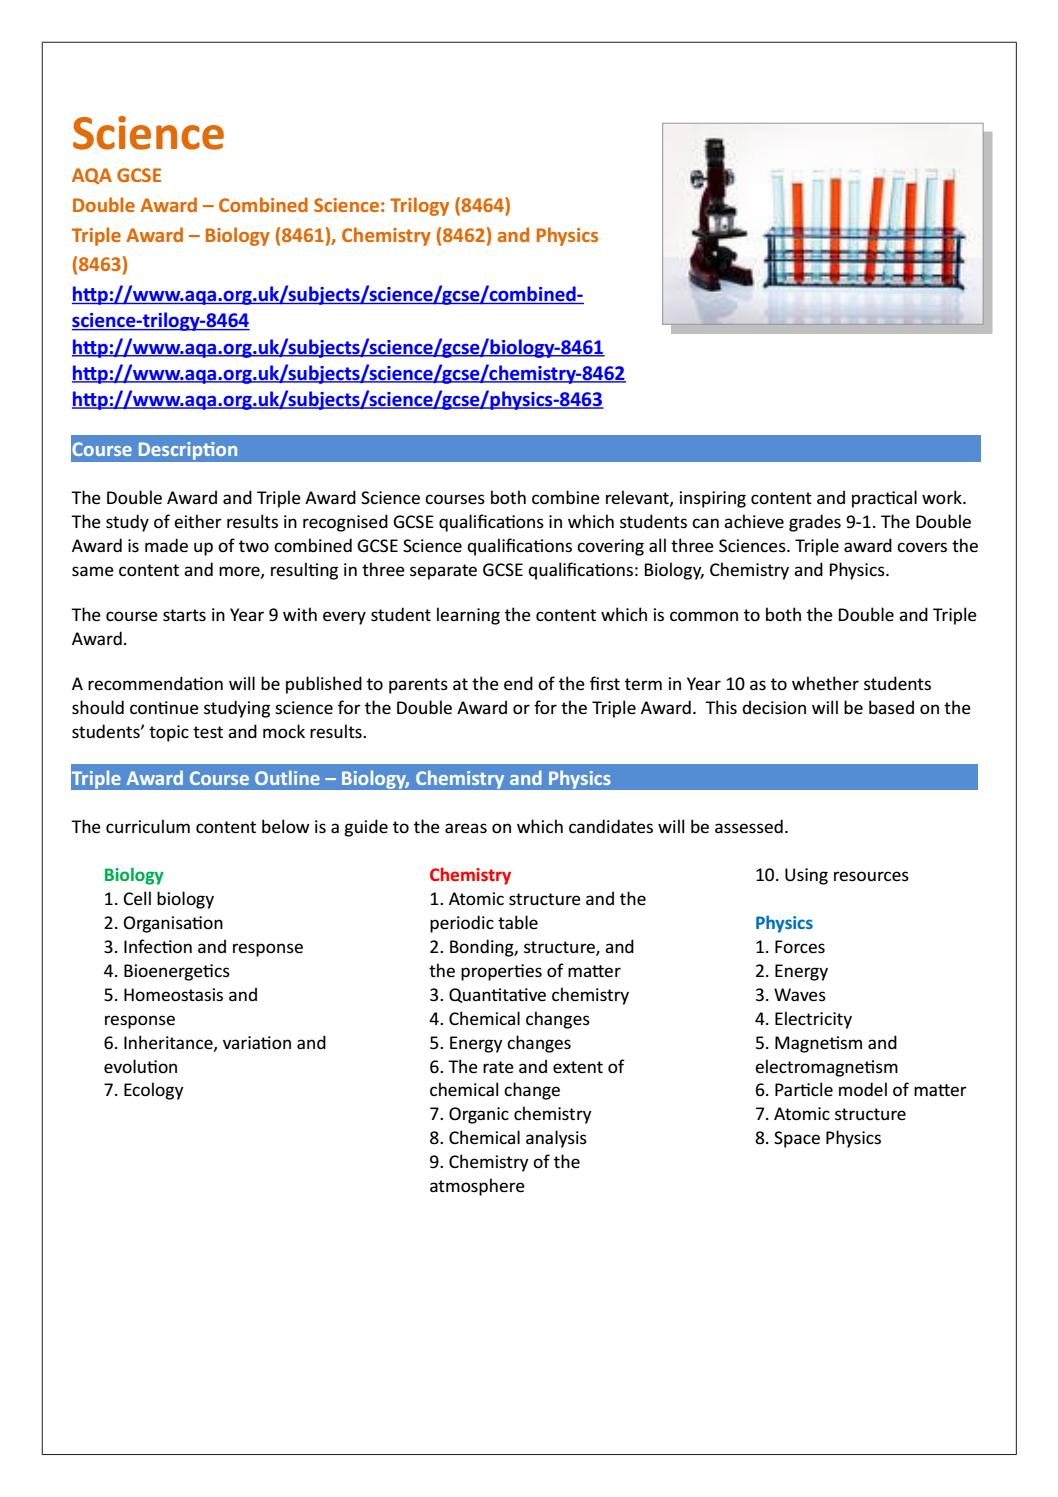 Year 9 options guide by gems wellington academy silicon oasis issuu urtaz Gallery